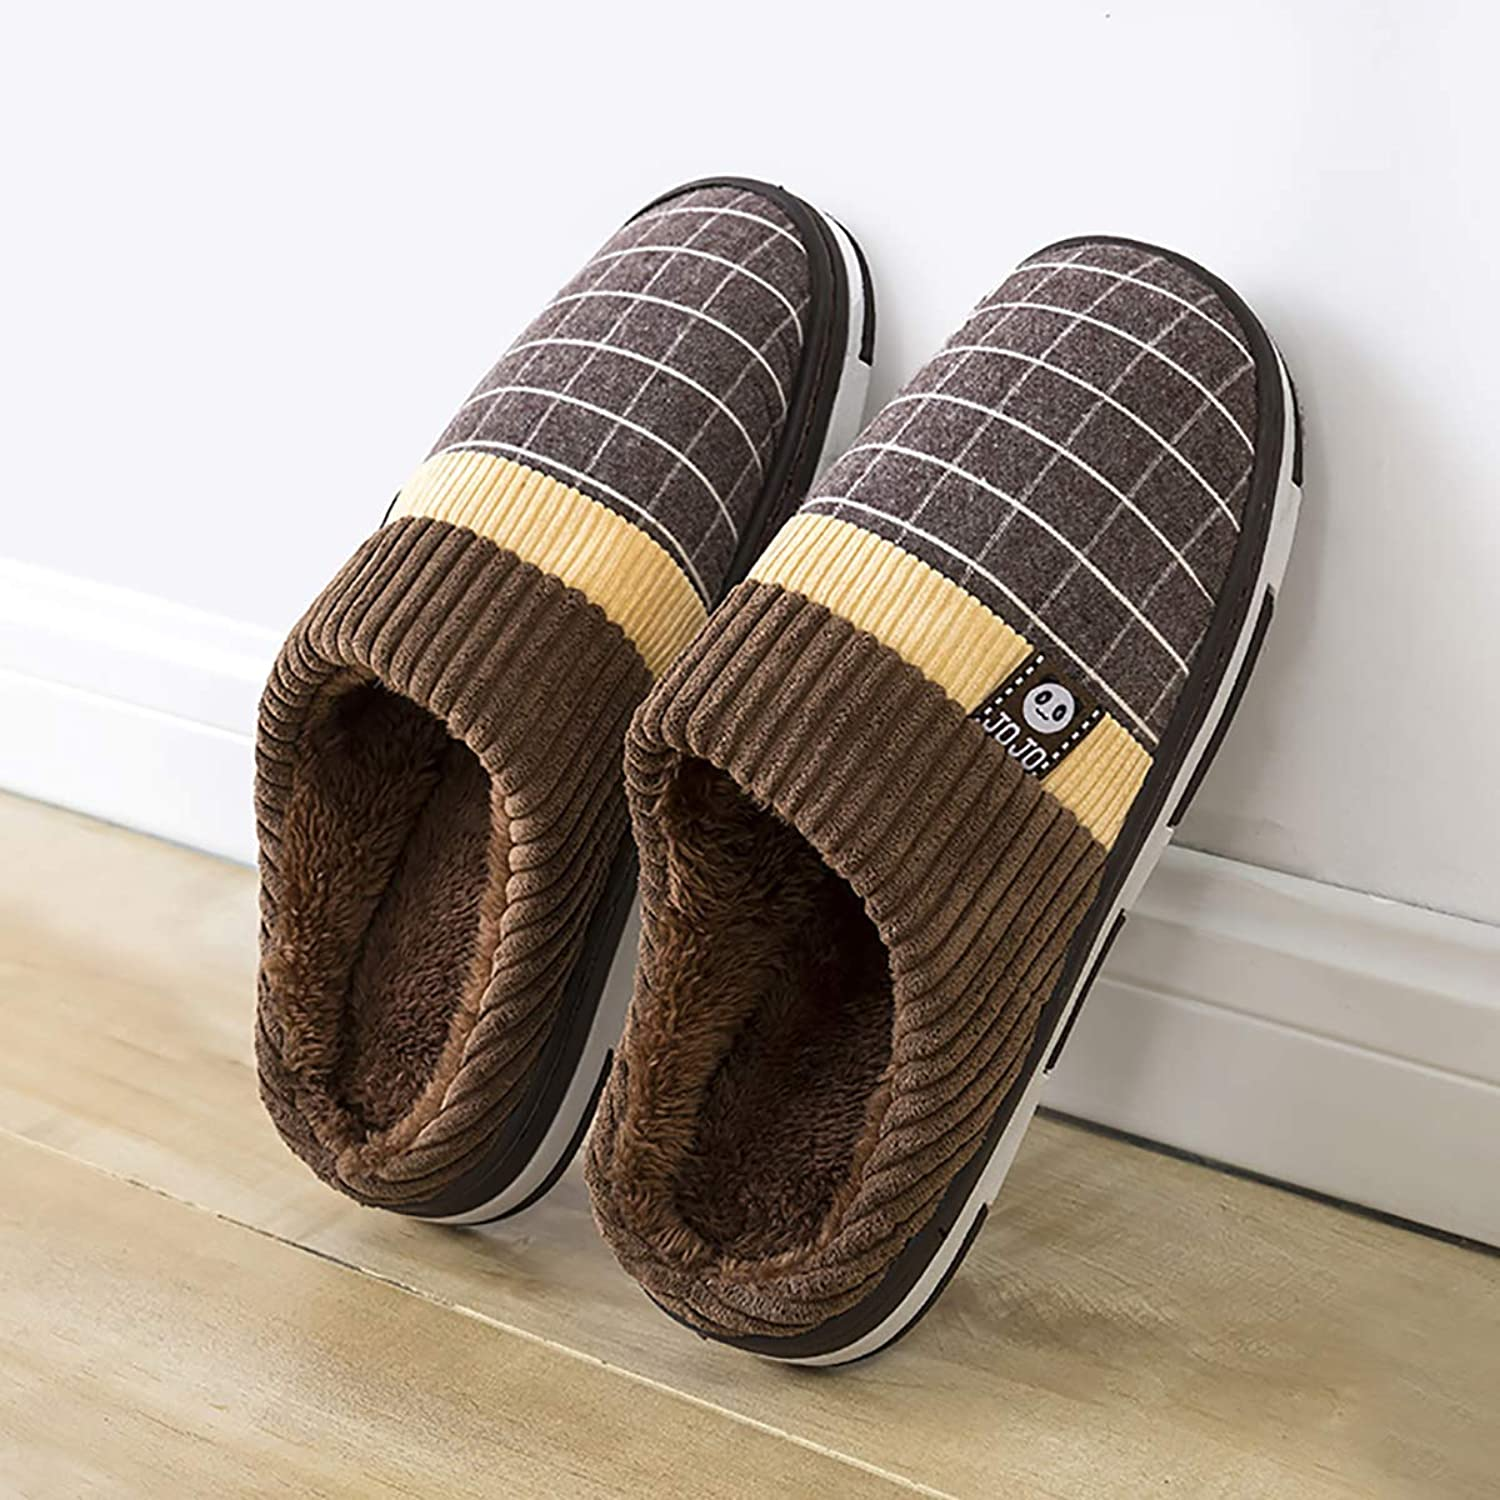 Coral Velvet Slippers Indoor Non-Slip Warm Cotton shoes Half-Pack Heel with Plaid Home shoes for Men and Women,Brown,280